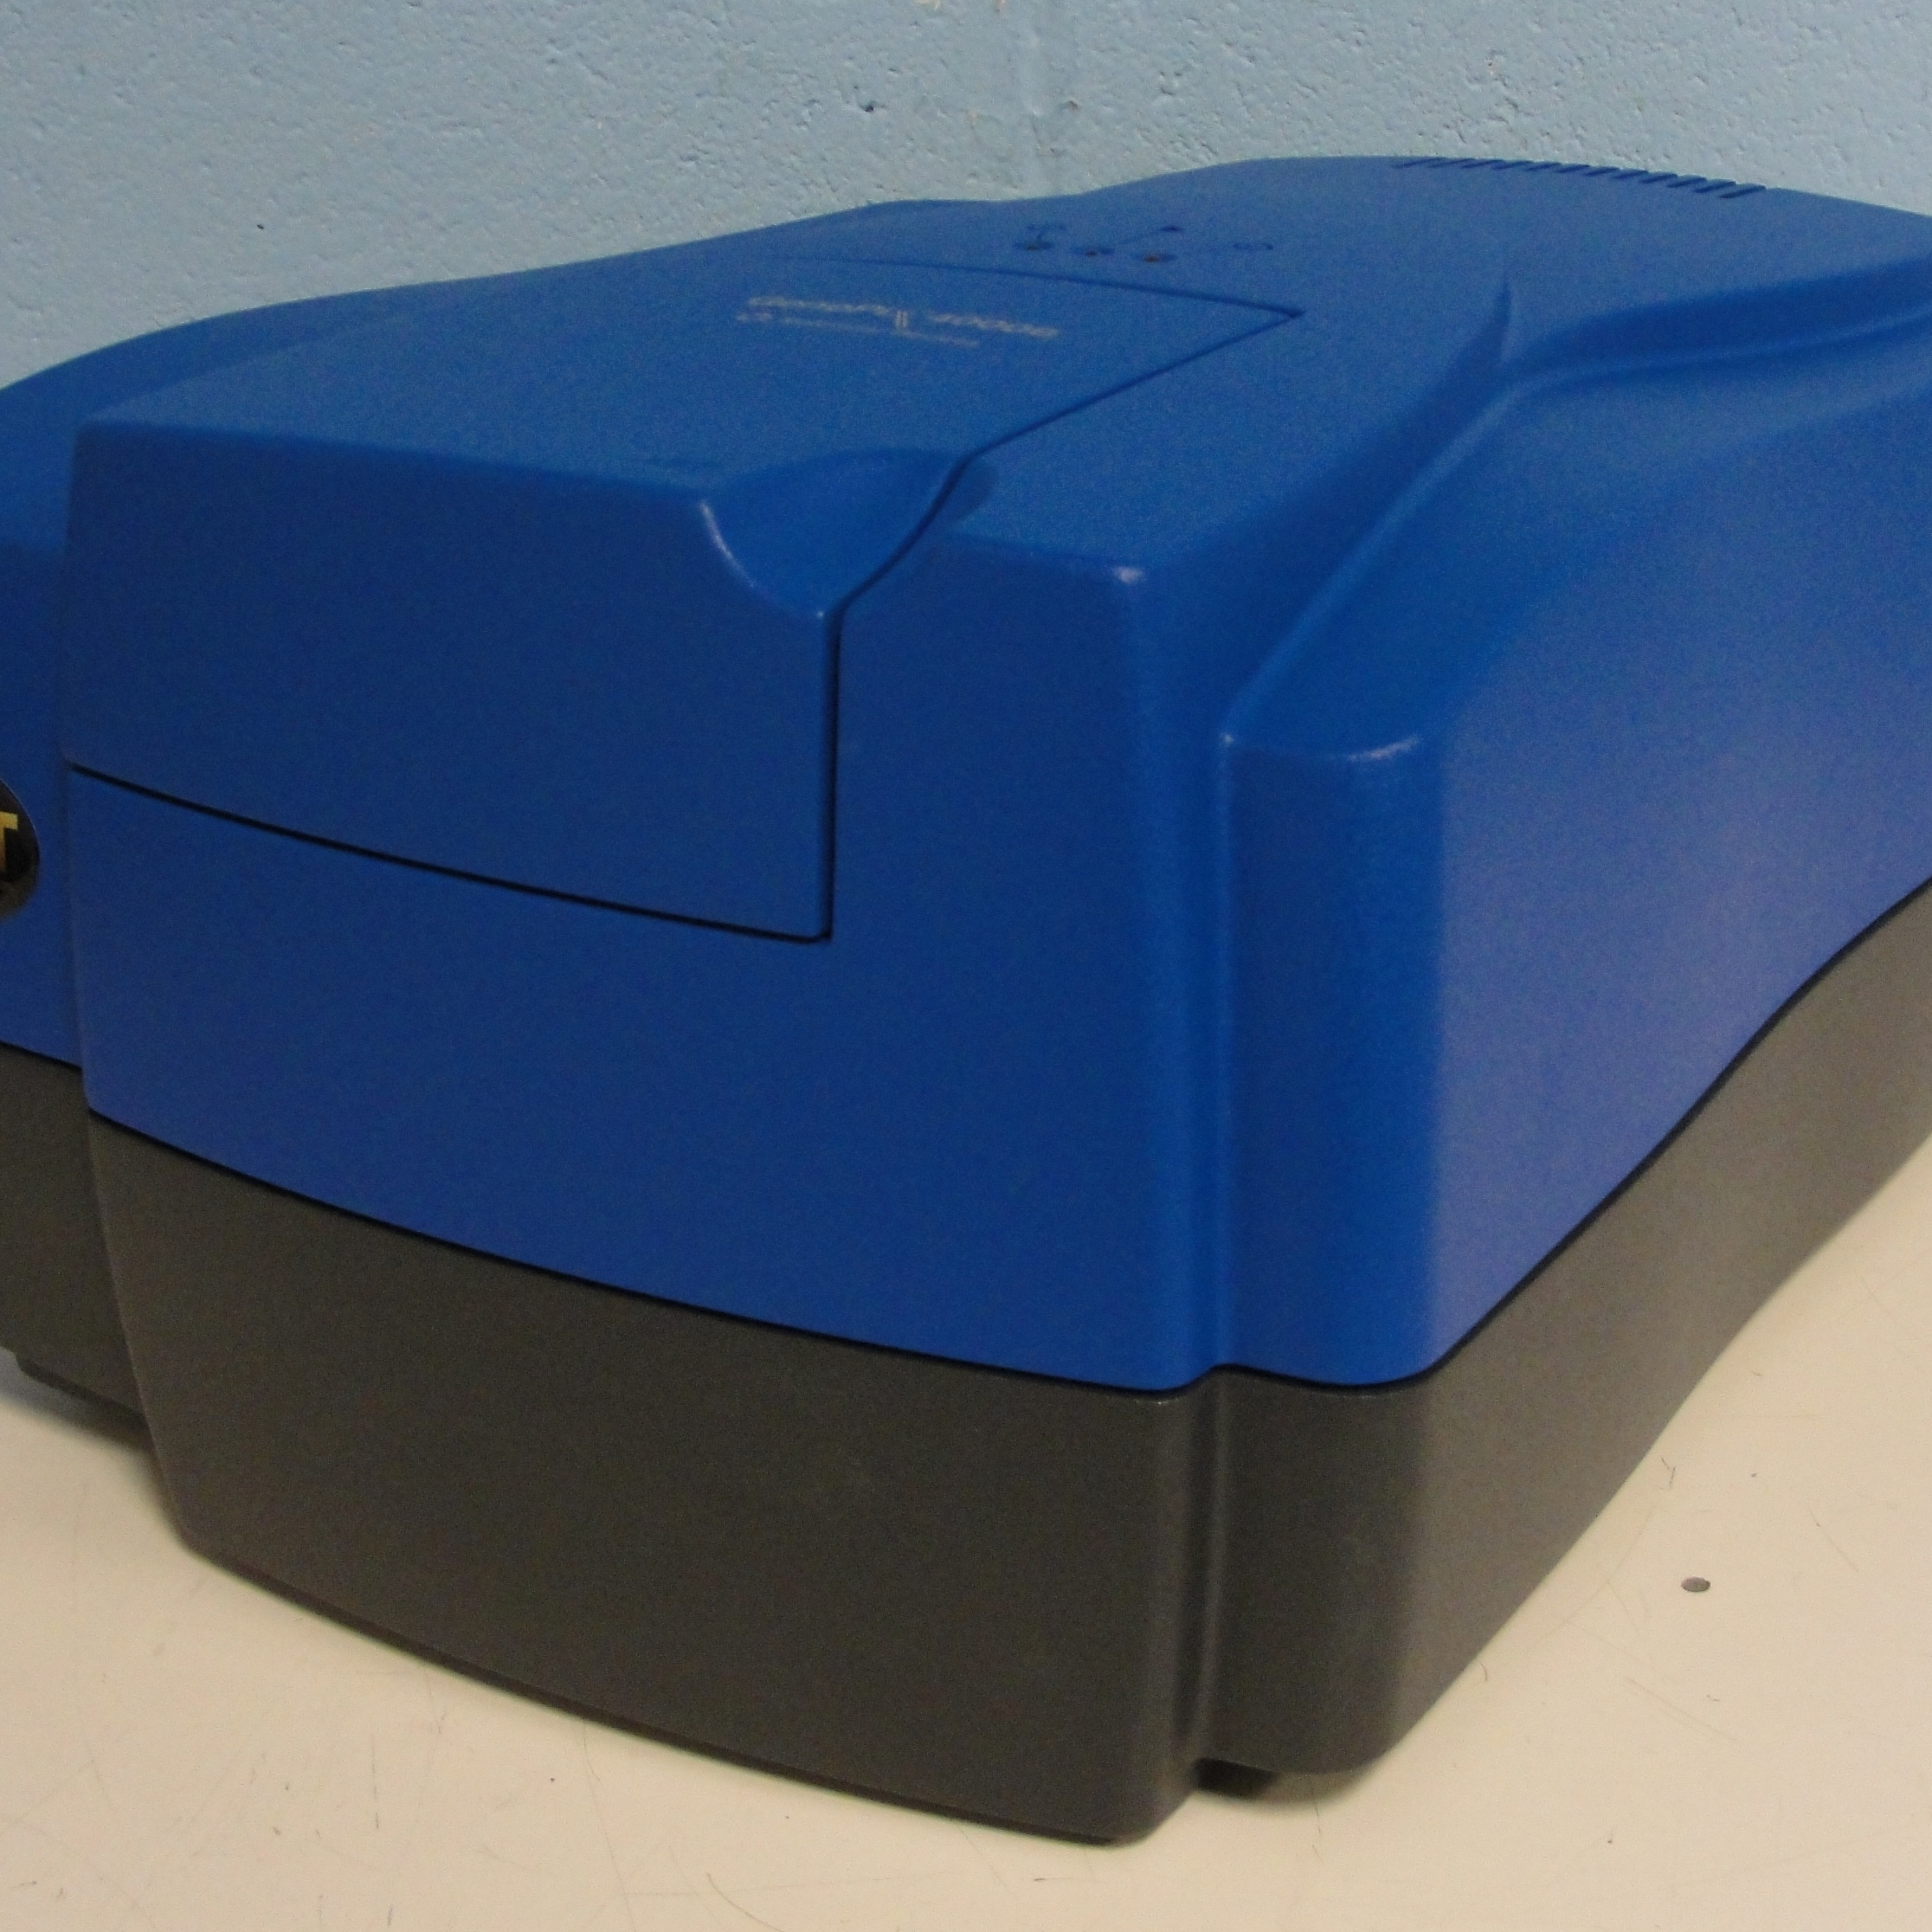 Molecular Devices GenePix 4000B Microarray Scanner Image